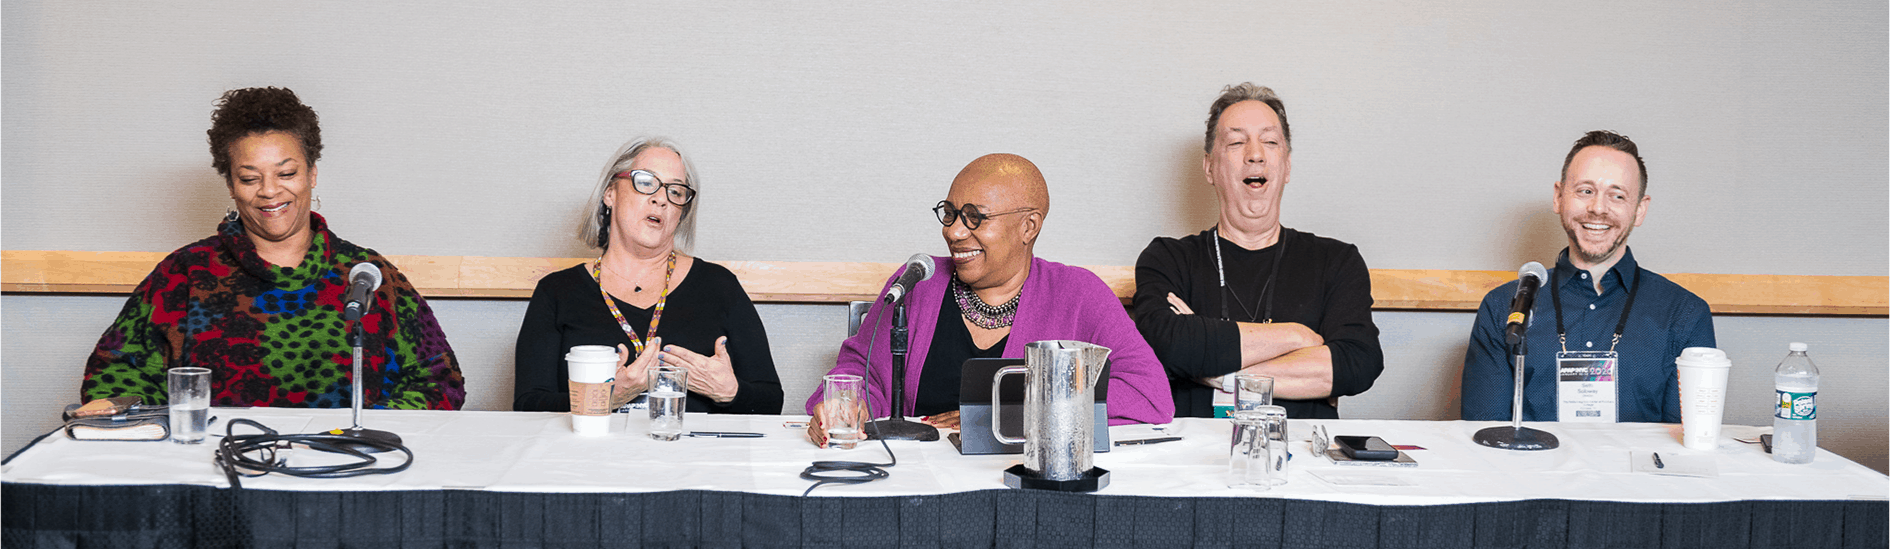 APAP|NYC 2020 Making Artistic Cents session by Adam Kissick/APAP